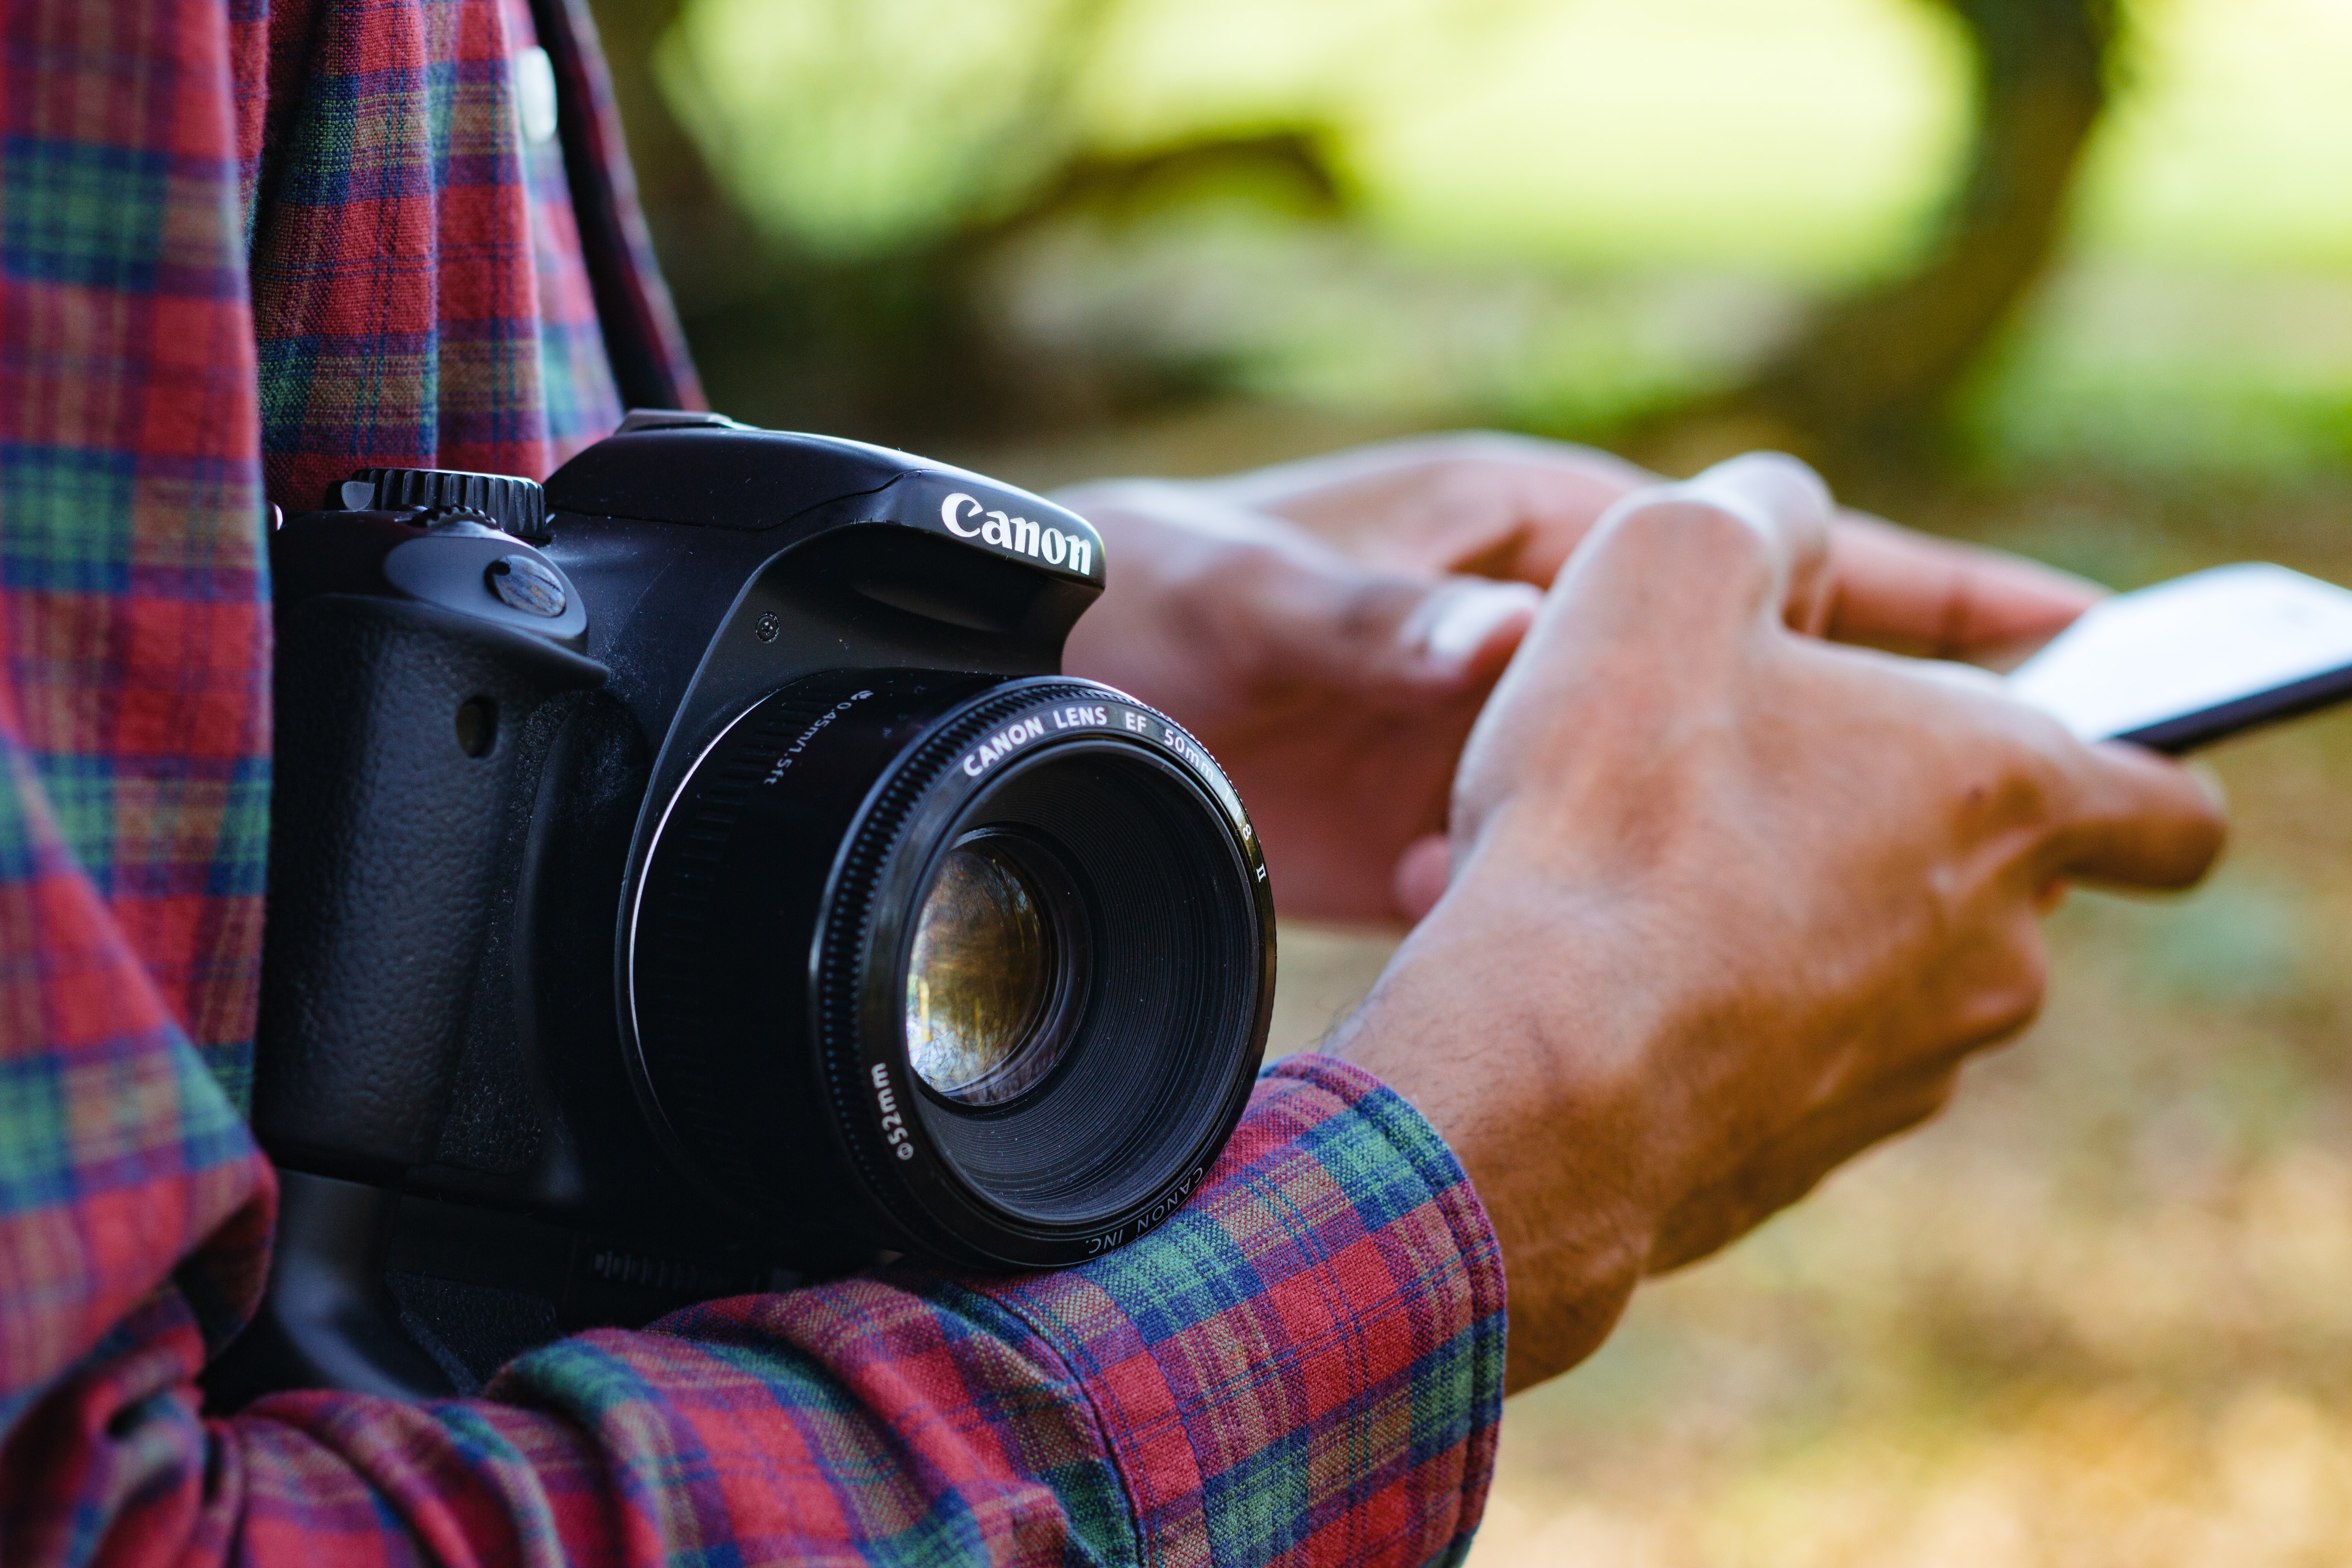 person holding smartphone with black Canon bridge camera on wrist at daytime